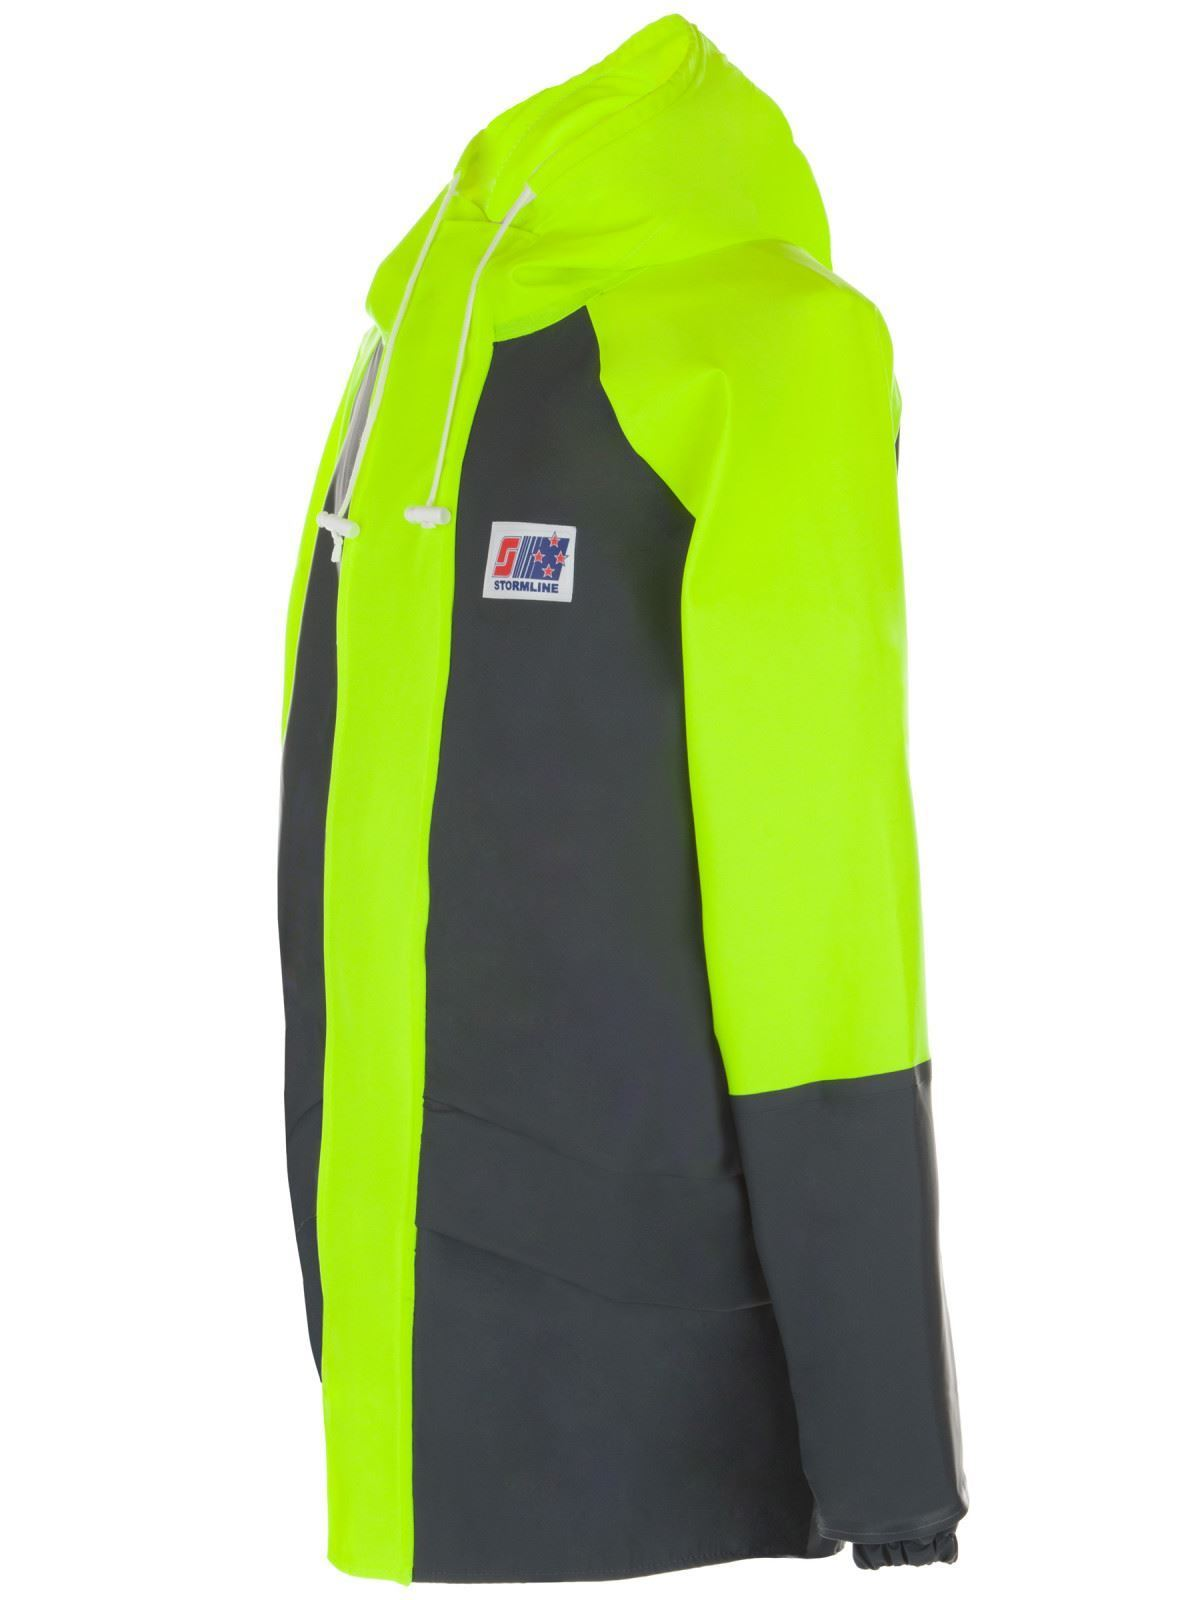 Stormtex-Air 203 Wet Weather Jacket - reid outdoors